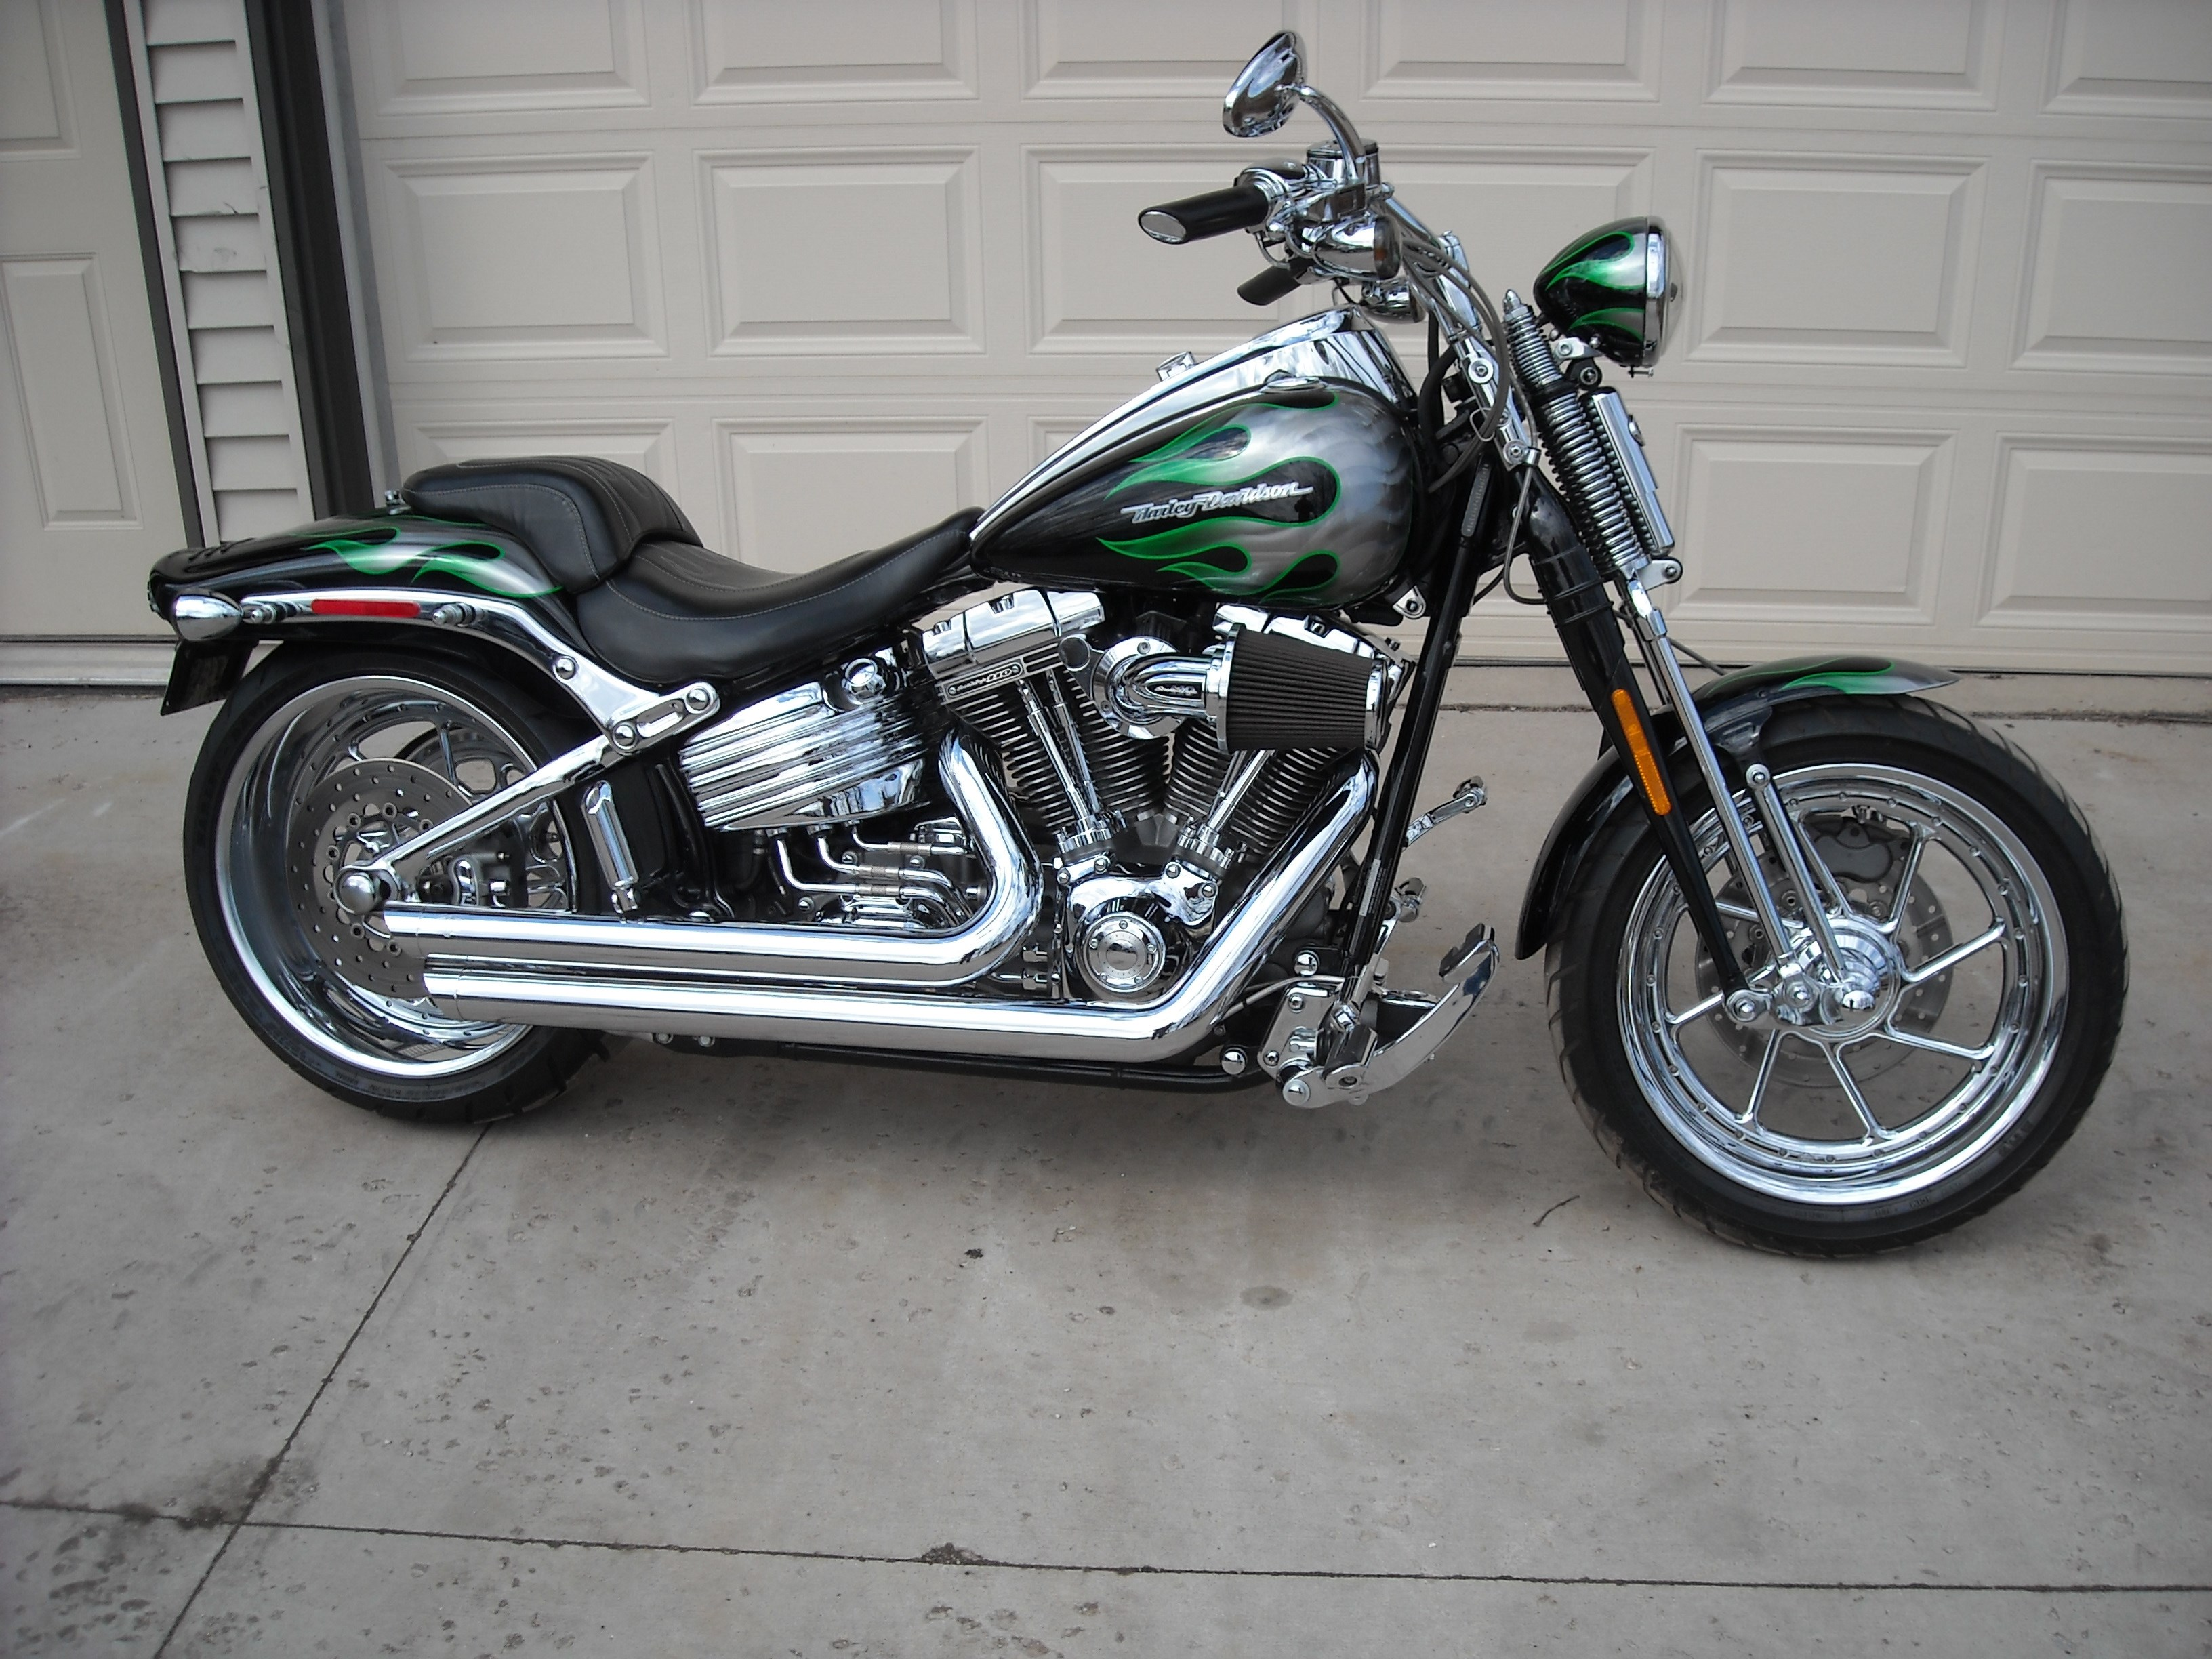 Back download harley davidson fxstsse screamin eagle softail springer picture 17 size 3264x2448 next